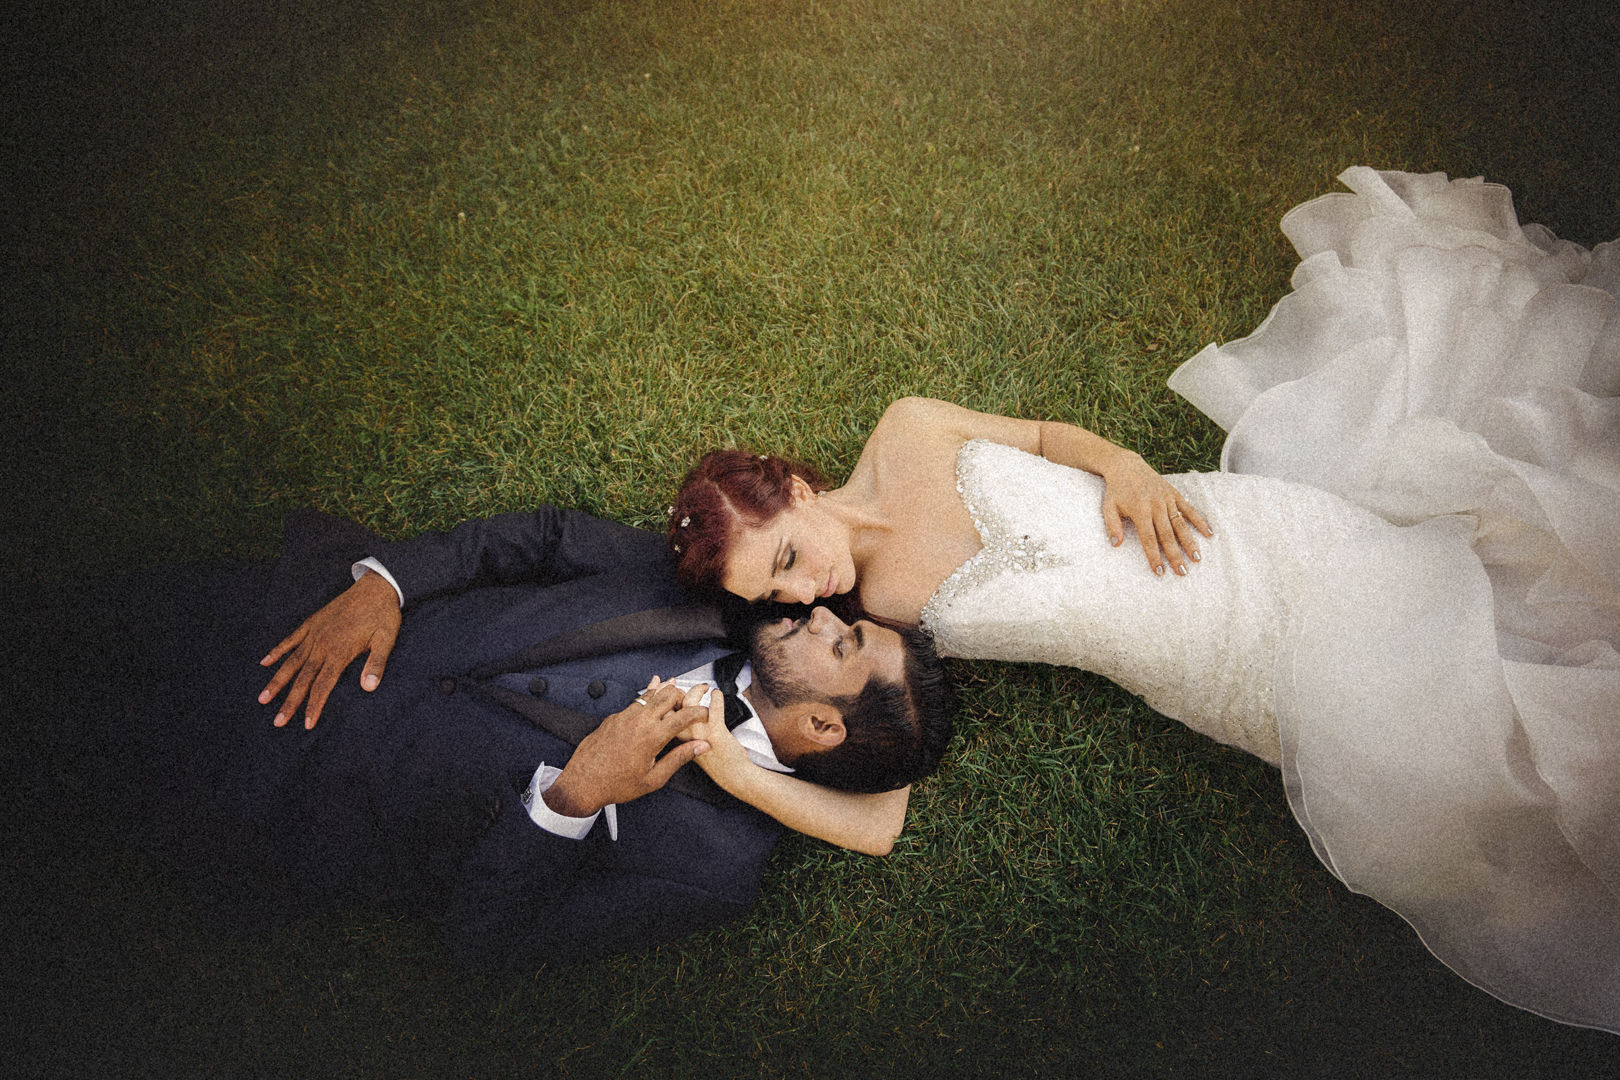 Romantic pose of a couple laying together on grass